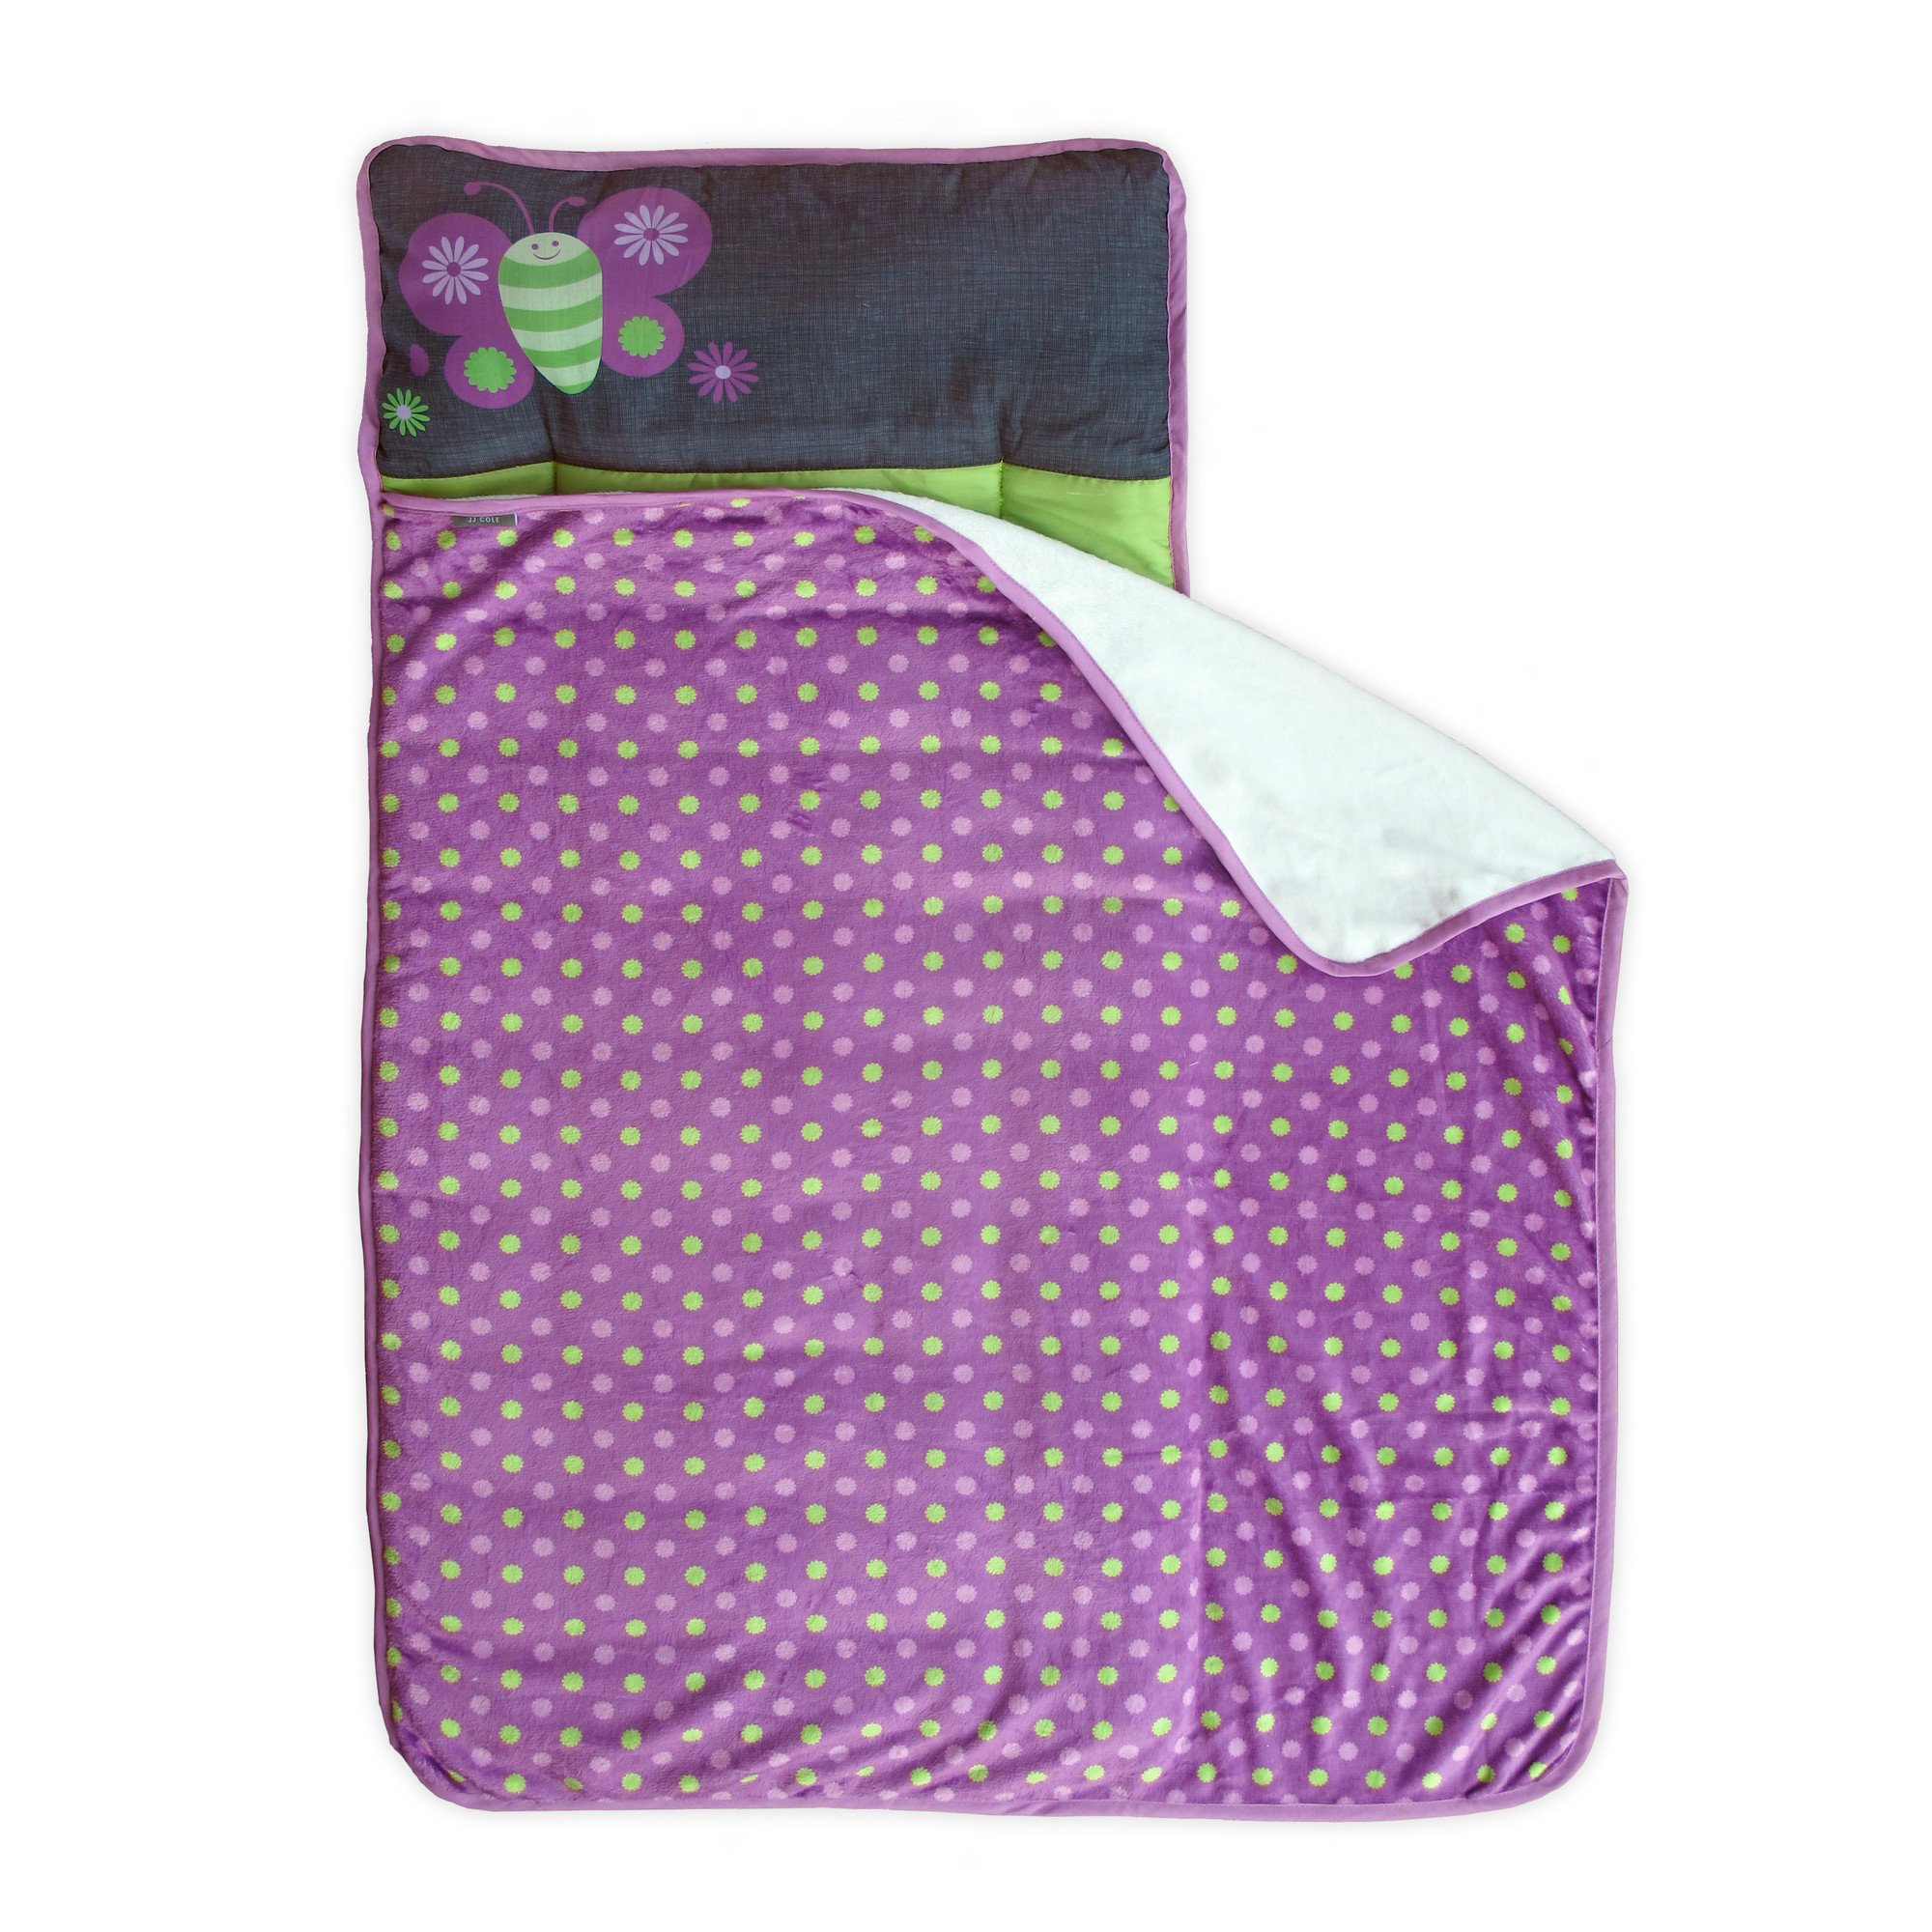 JJ Cole Nap Mat, Butterfly product image